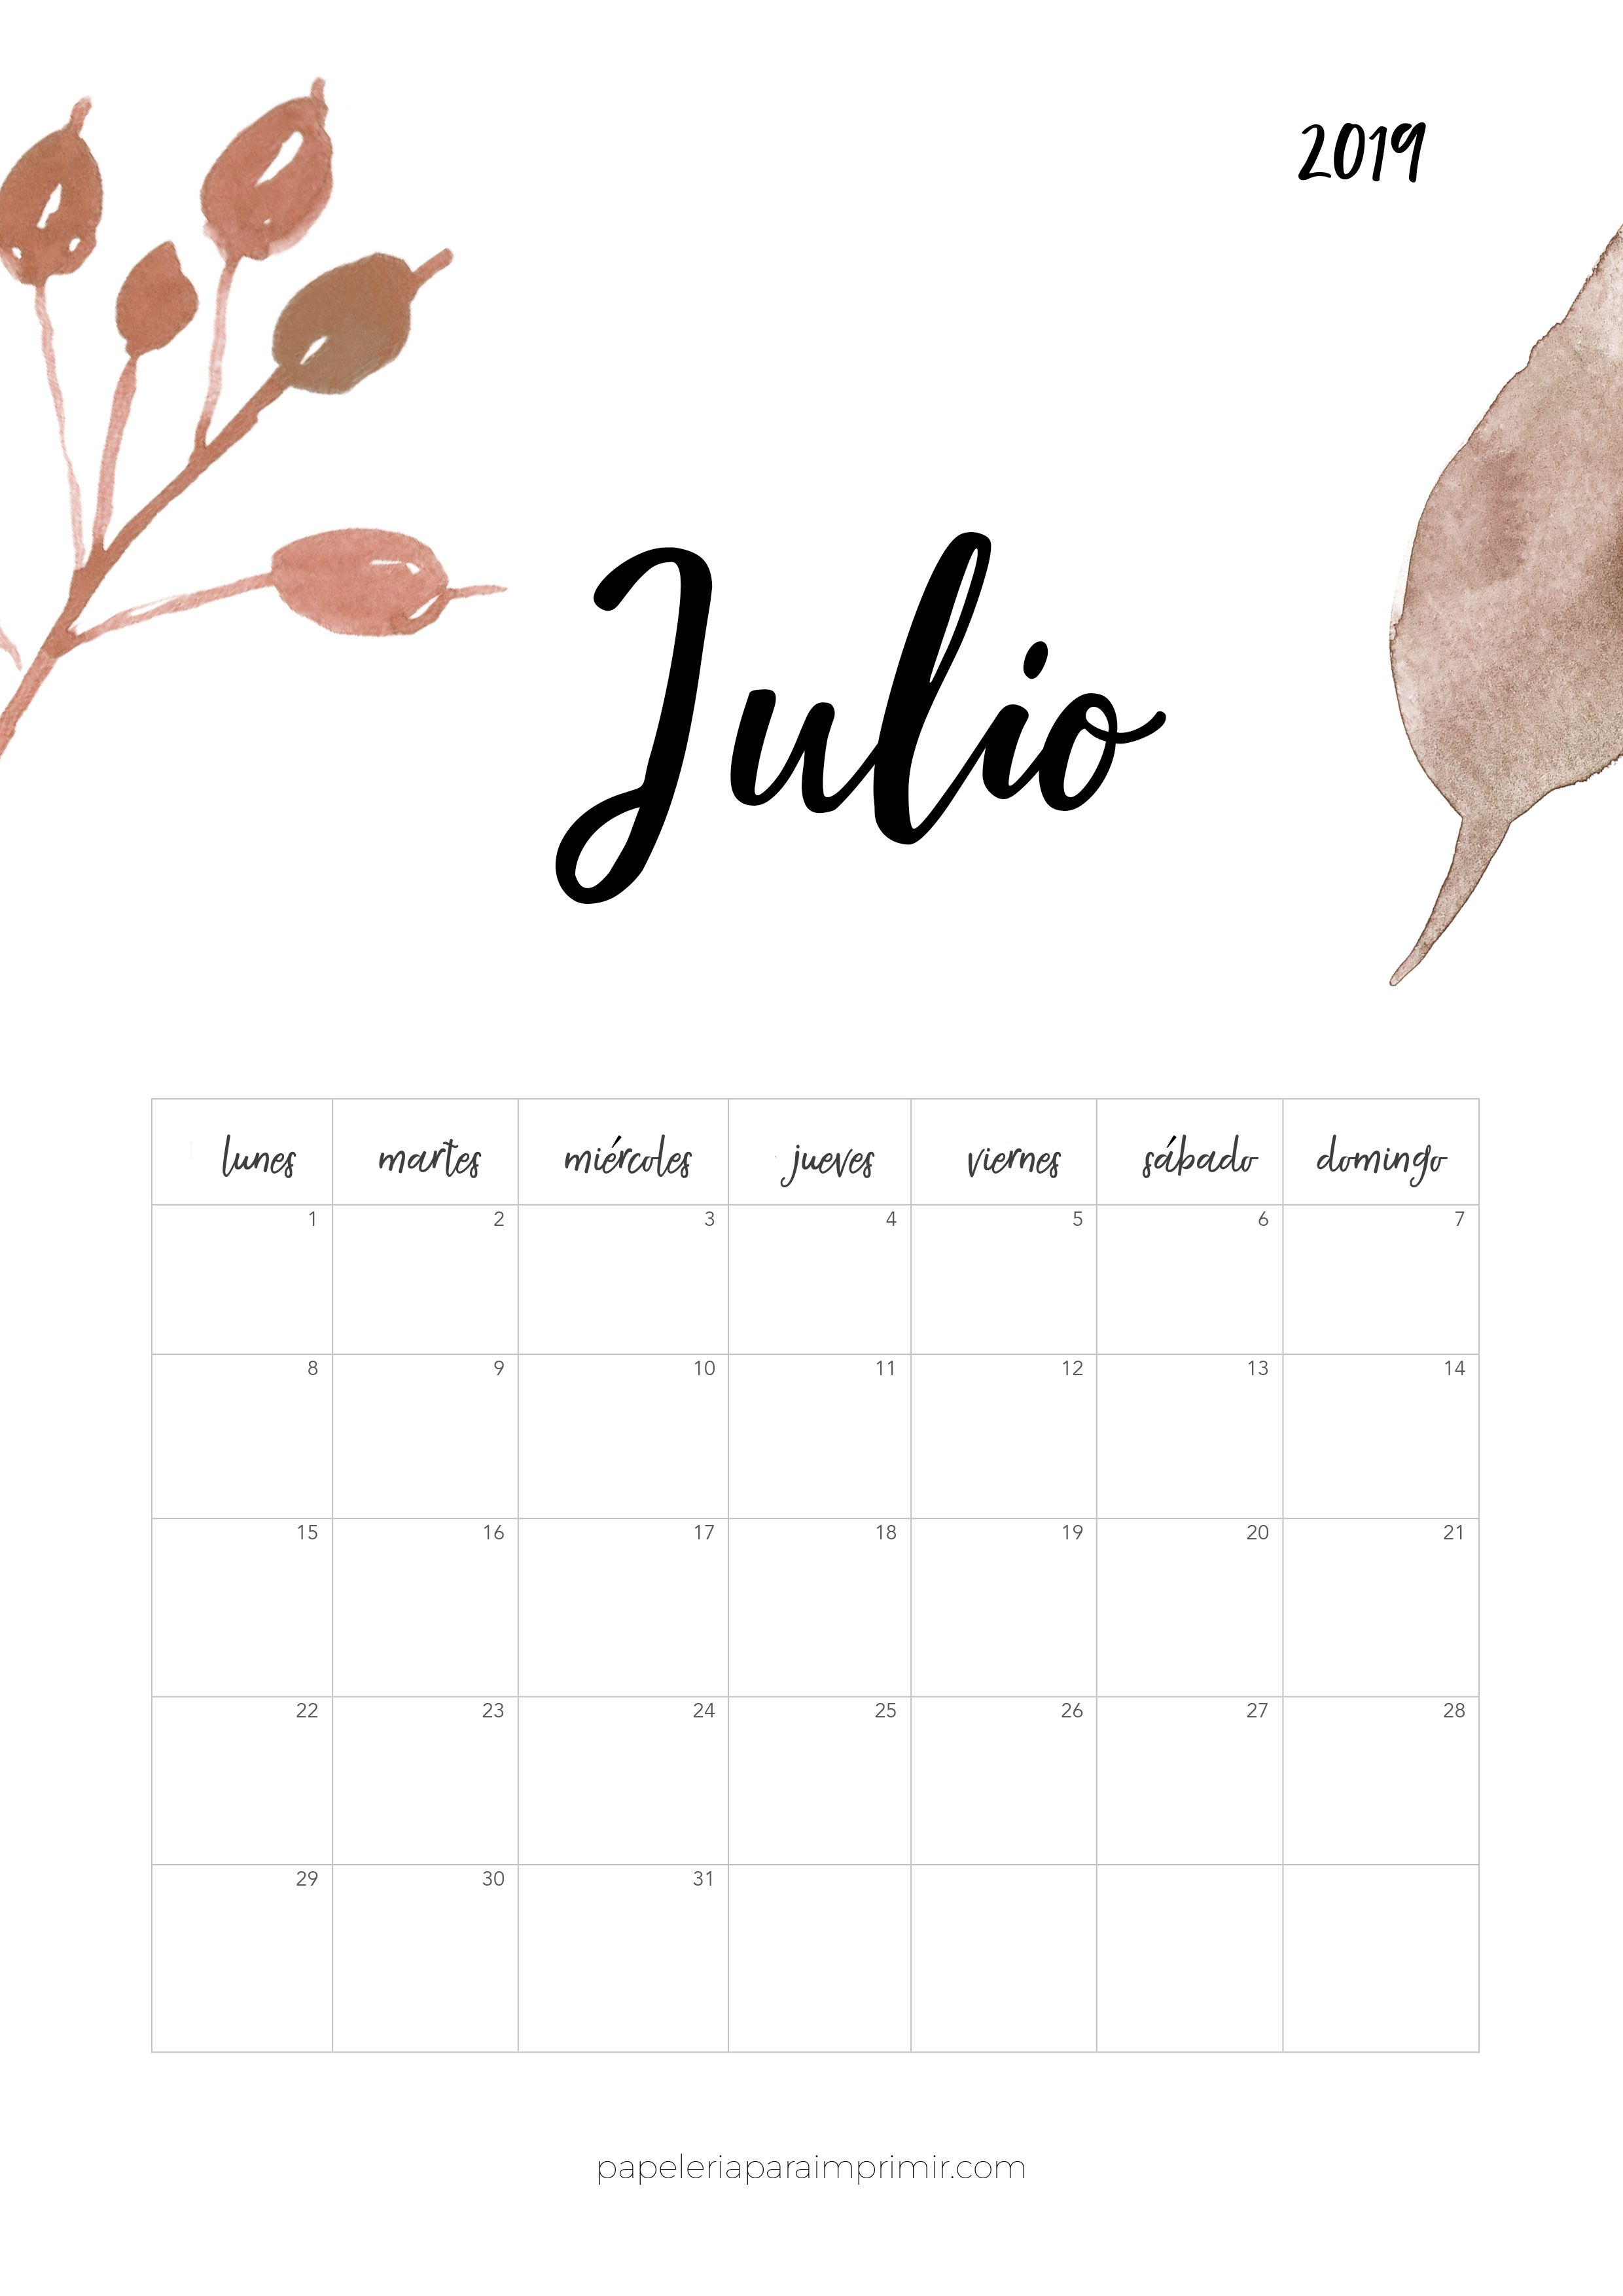 Calendario Julio 2019 Mr Wonderful.Calendario Para Imprimir 2019 Julio Calendario Calendar